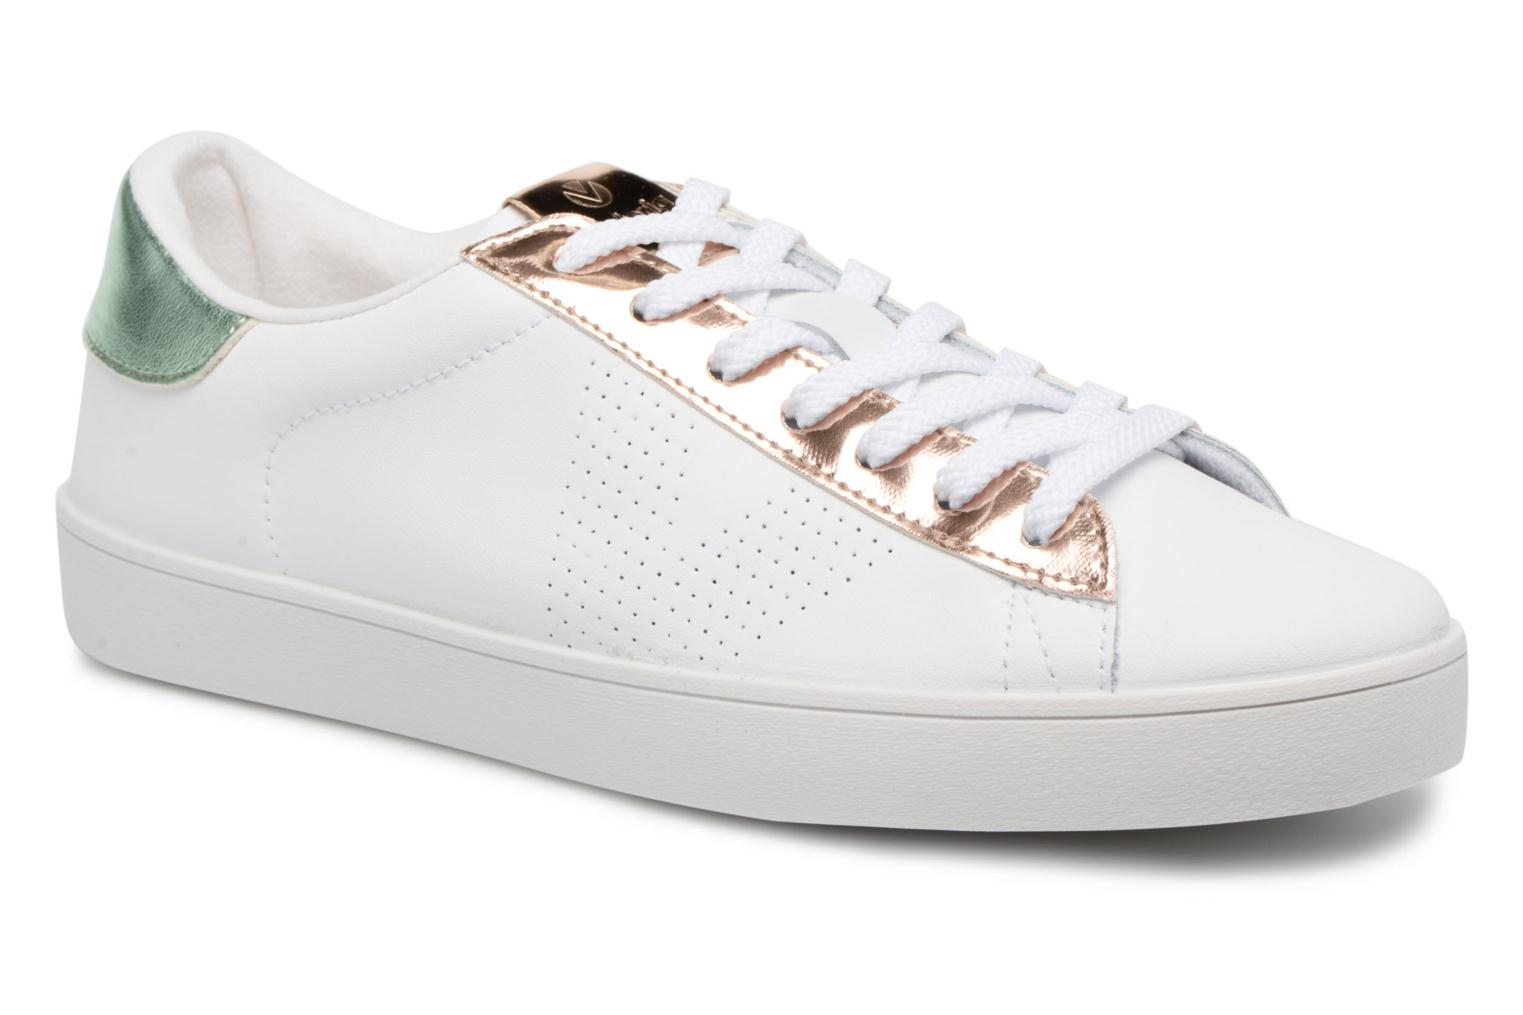 professional countdown package cheap online VICTORIA Deportivo Metalizad Trainers huge surprise sale online oIHH7Wy